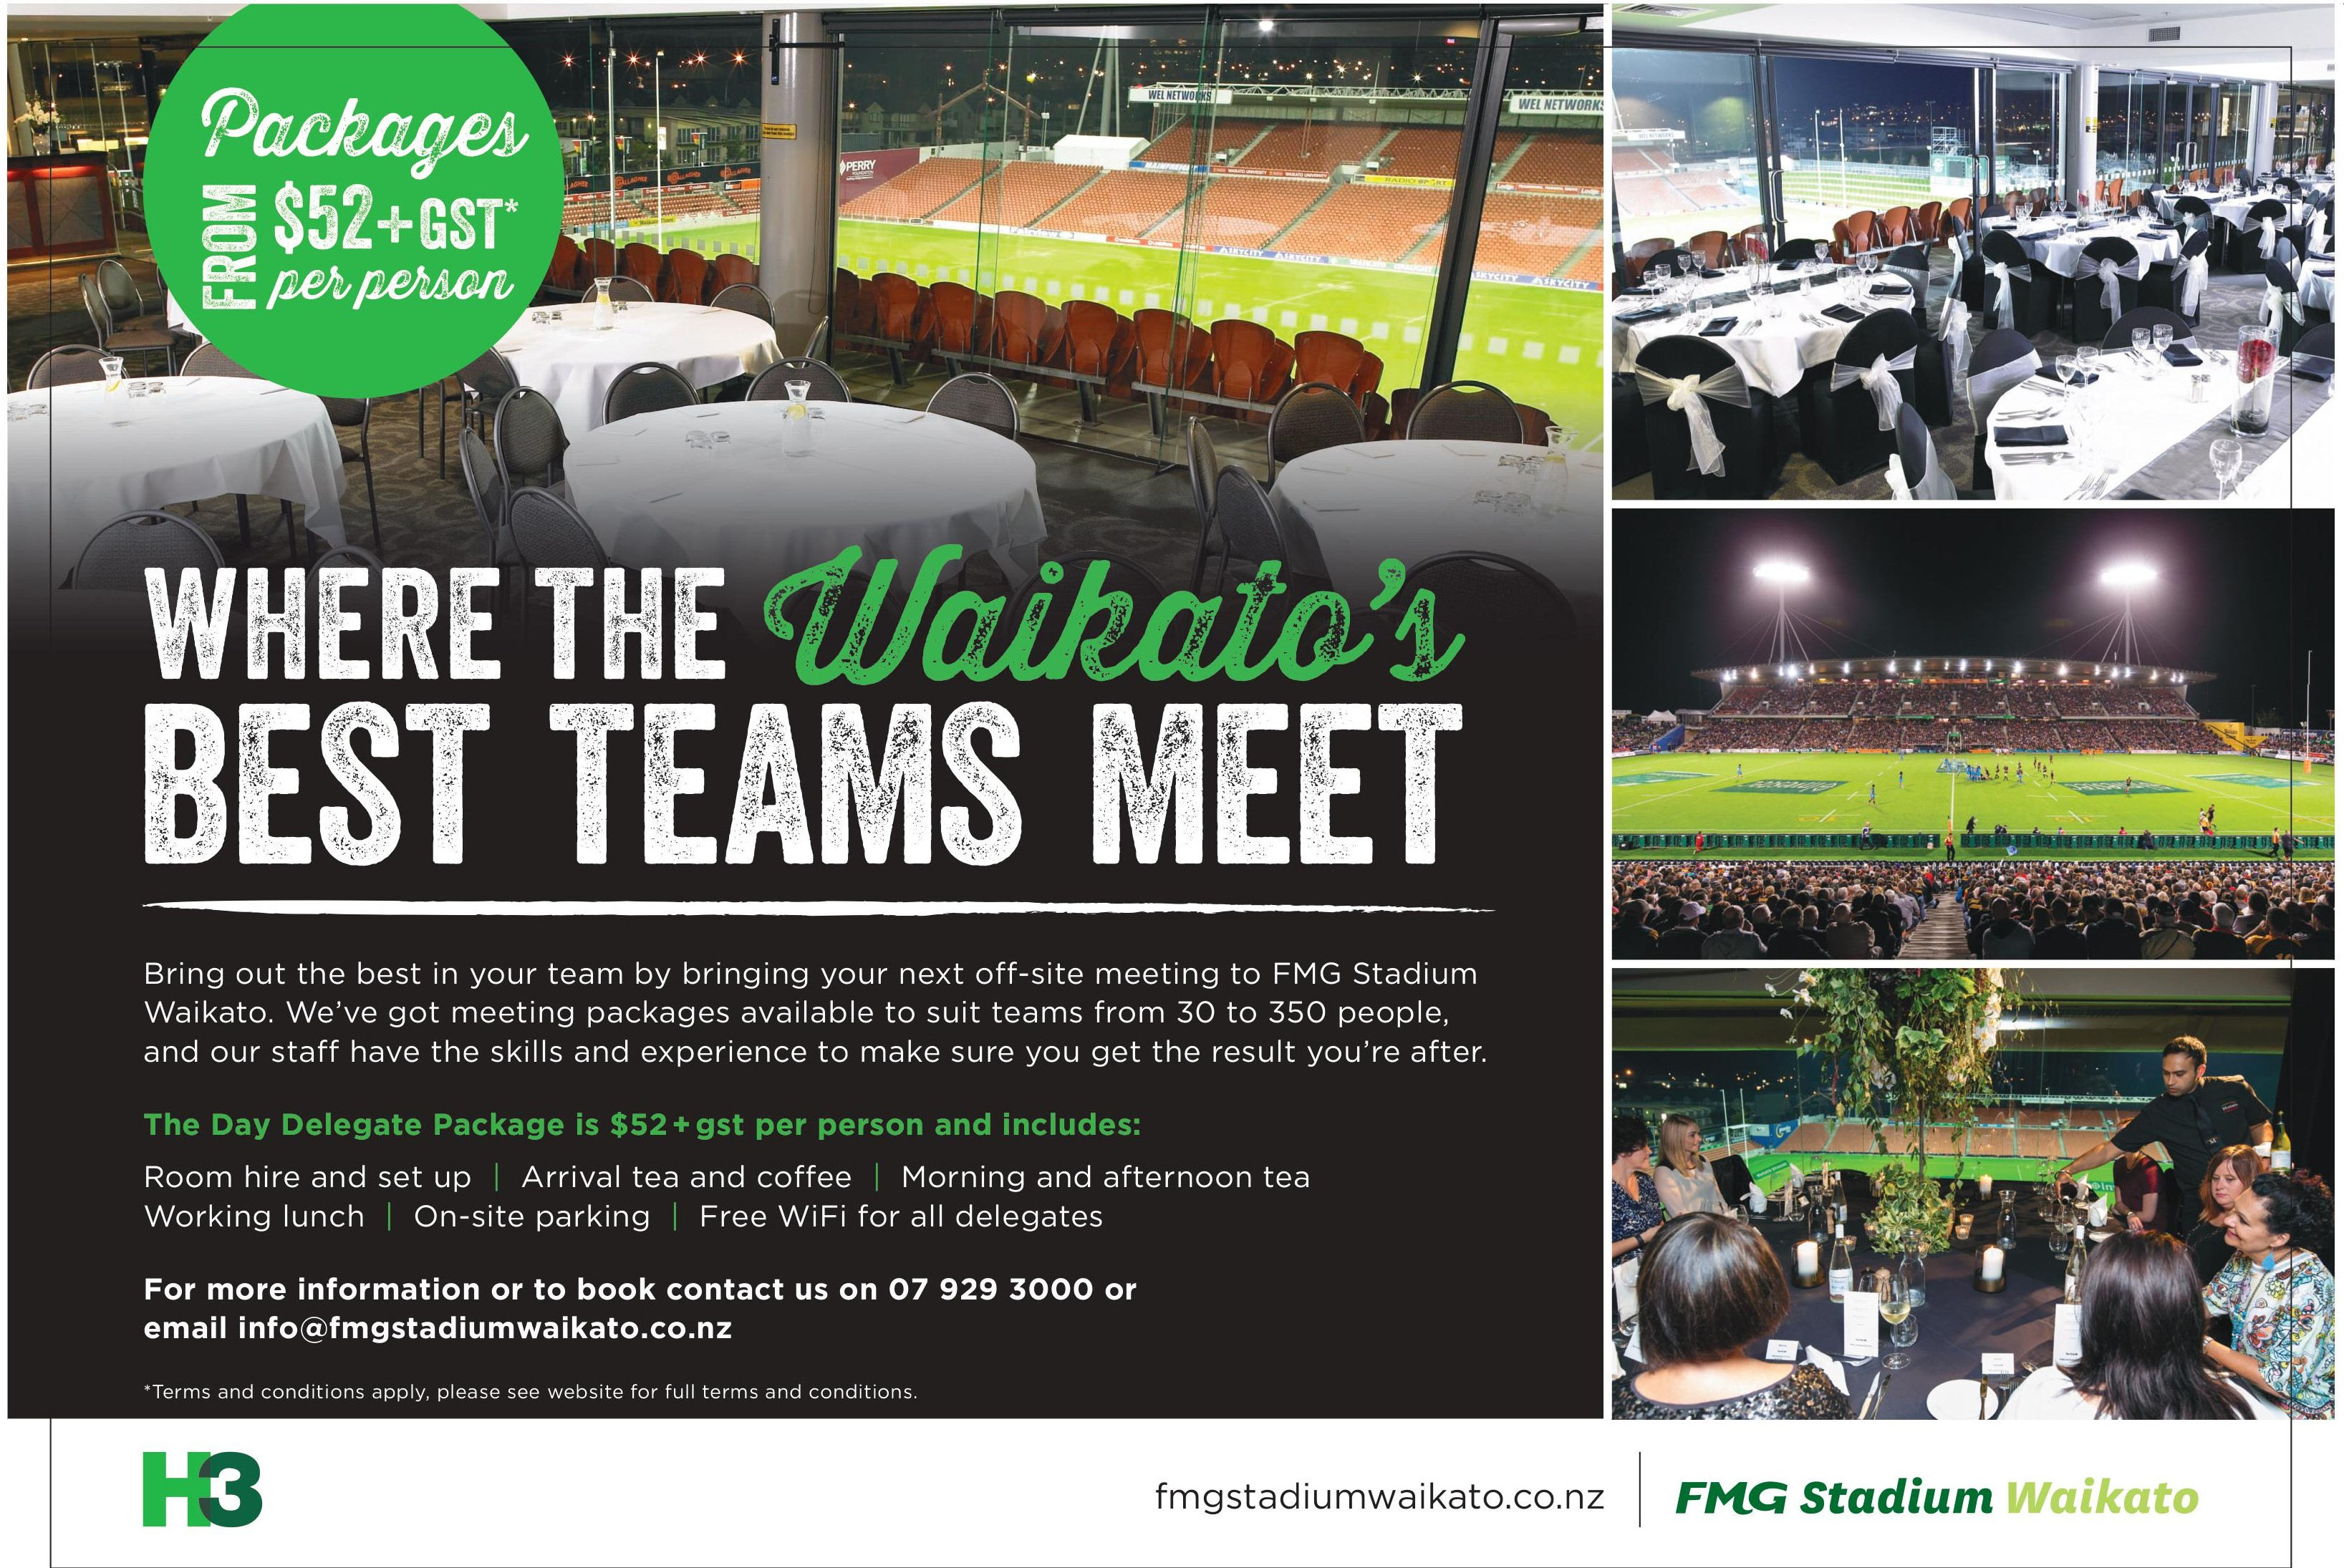 New meeting packages launched at FMG Stadium Waikato